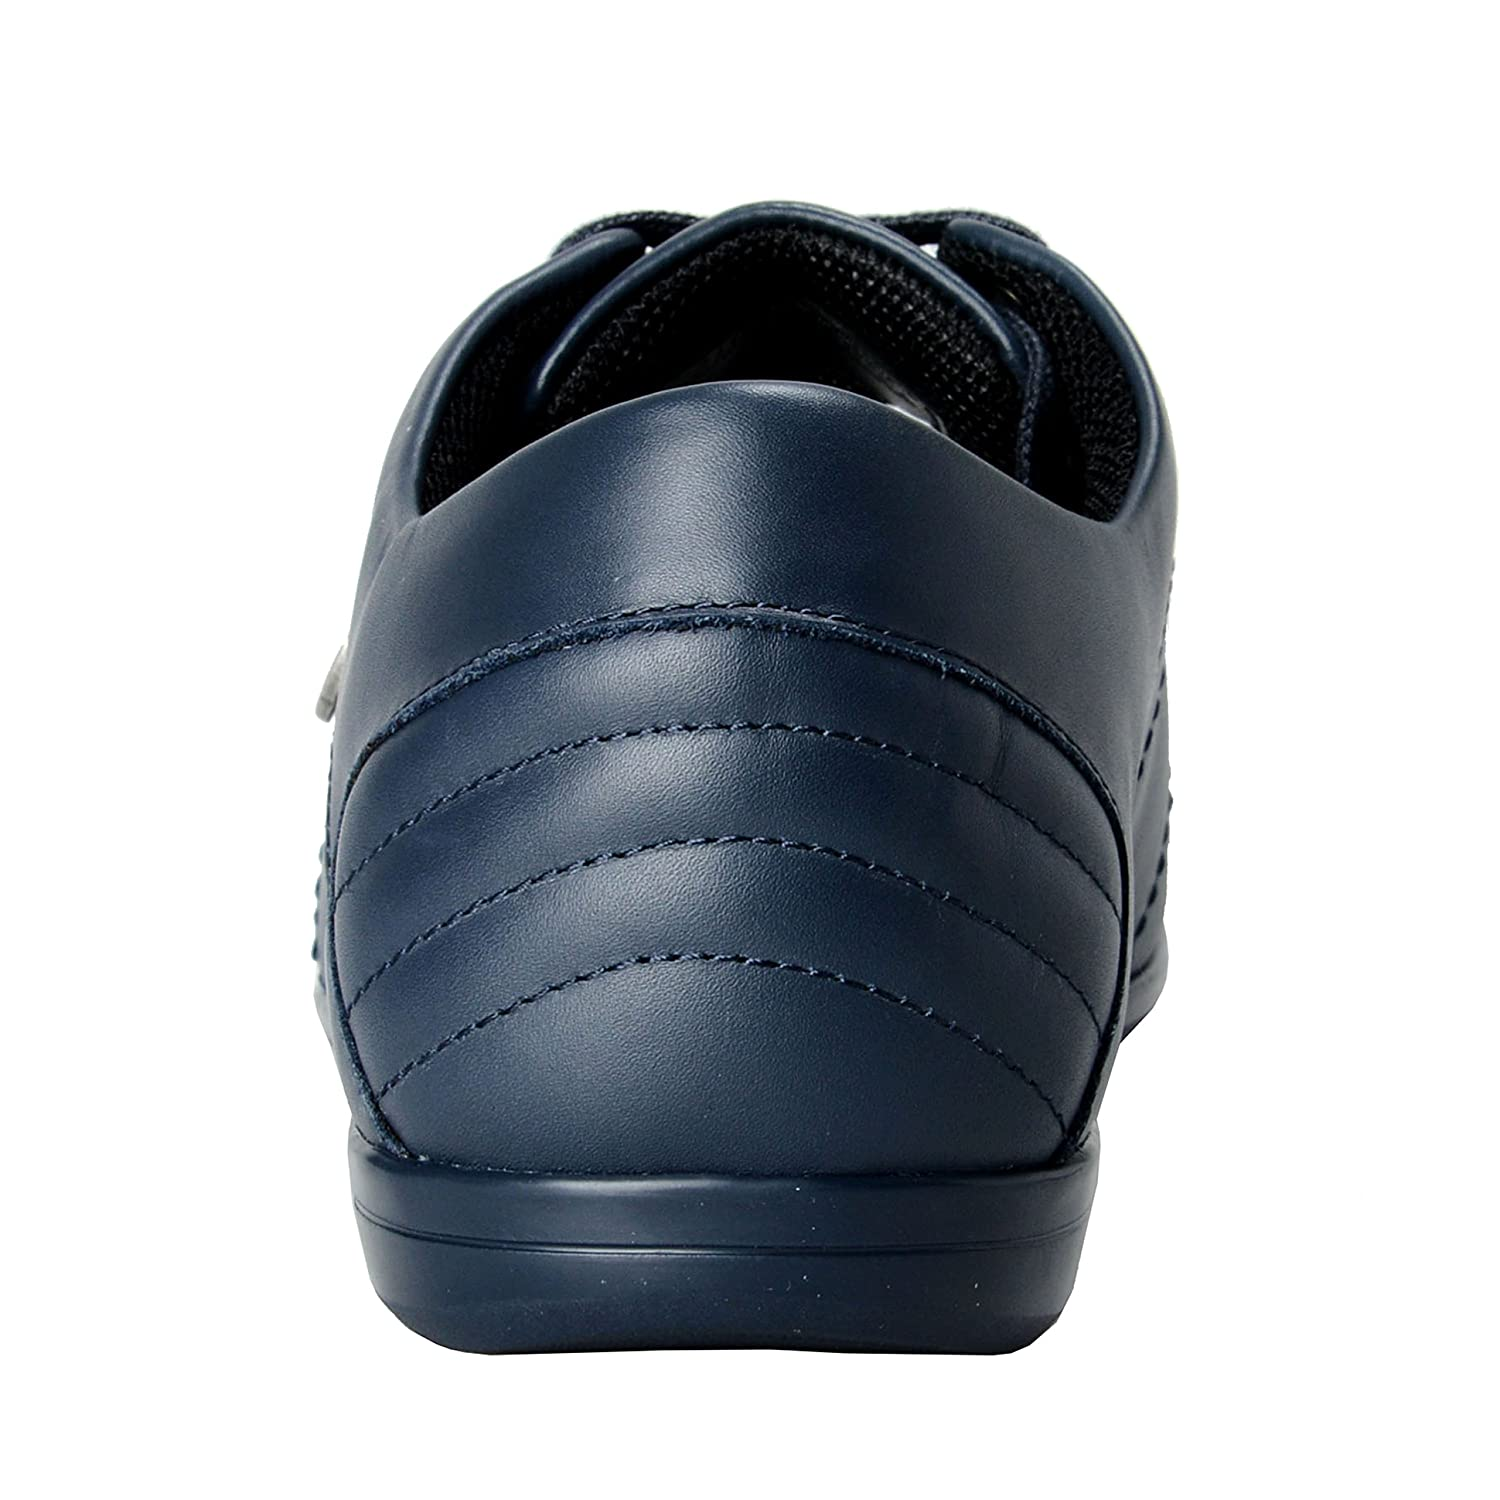 Versace Collection Men's Blue Leather Fashion Sneakers Shoes US 7 IT 40;:  Amazon.ca: Clothing & Accessories